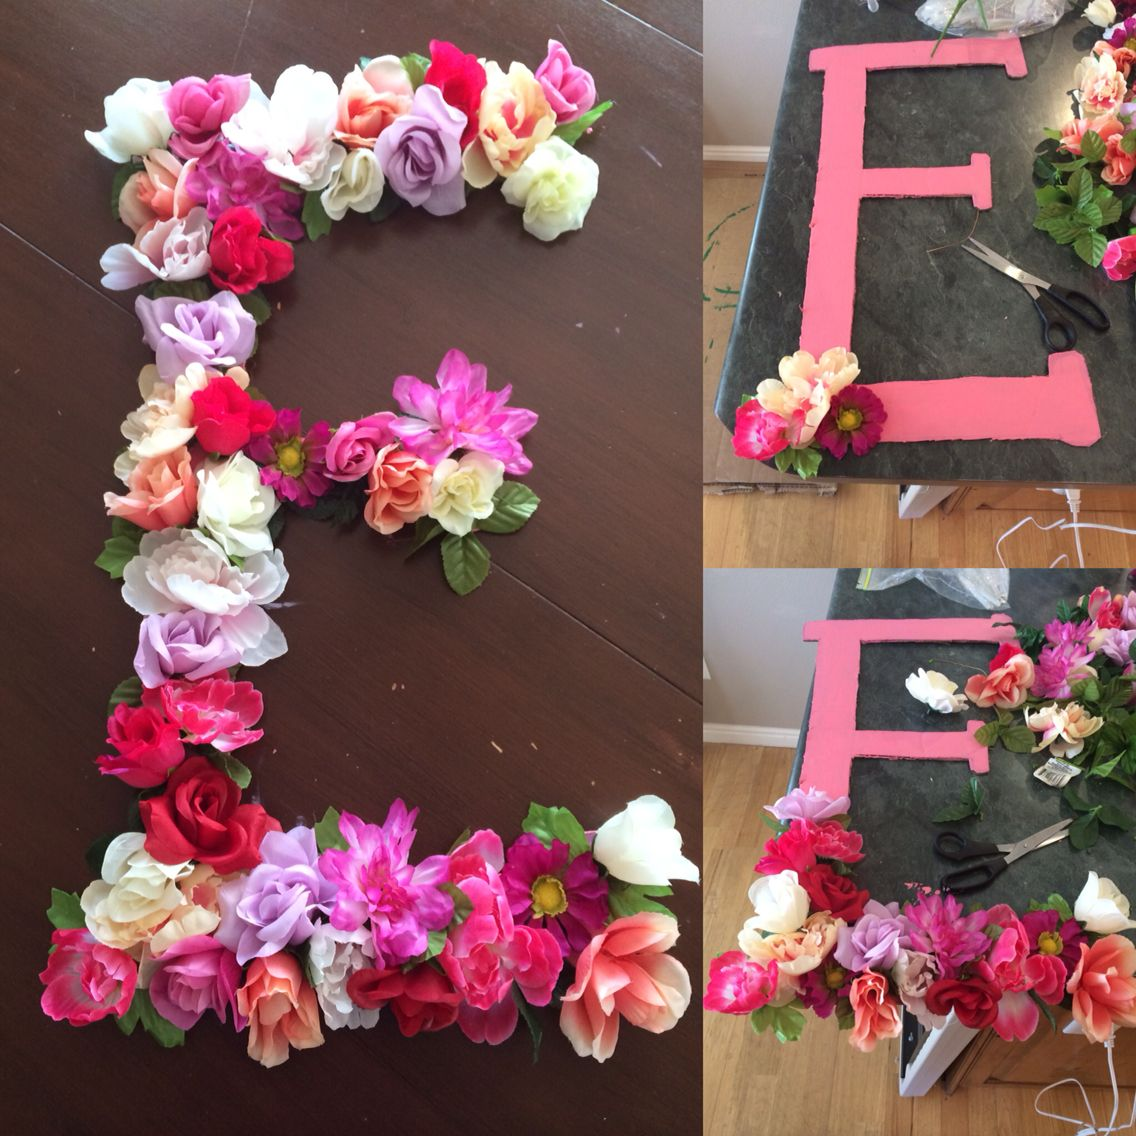 Floral Letters Cardboard Cut Out Letter Paint Hot Glue And Fake